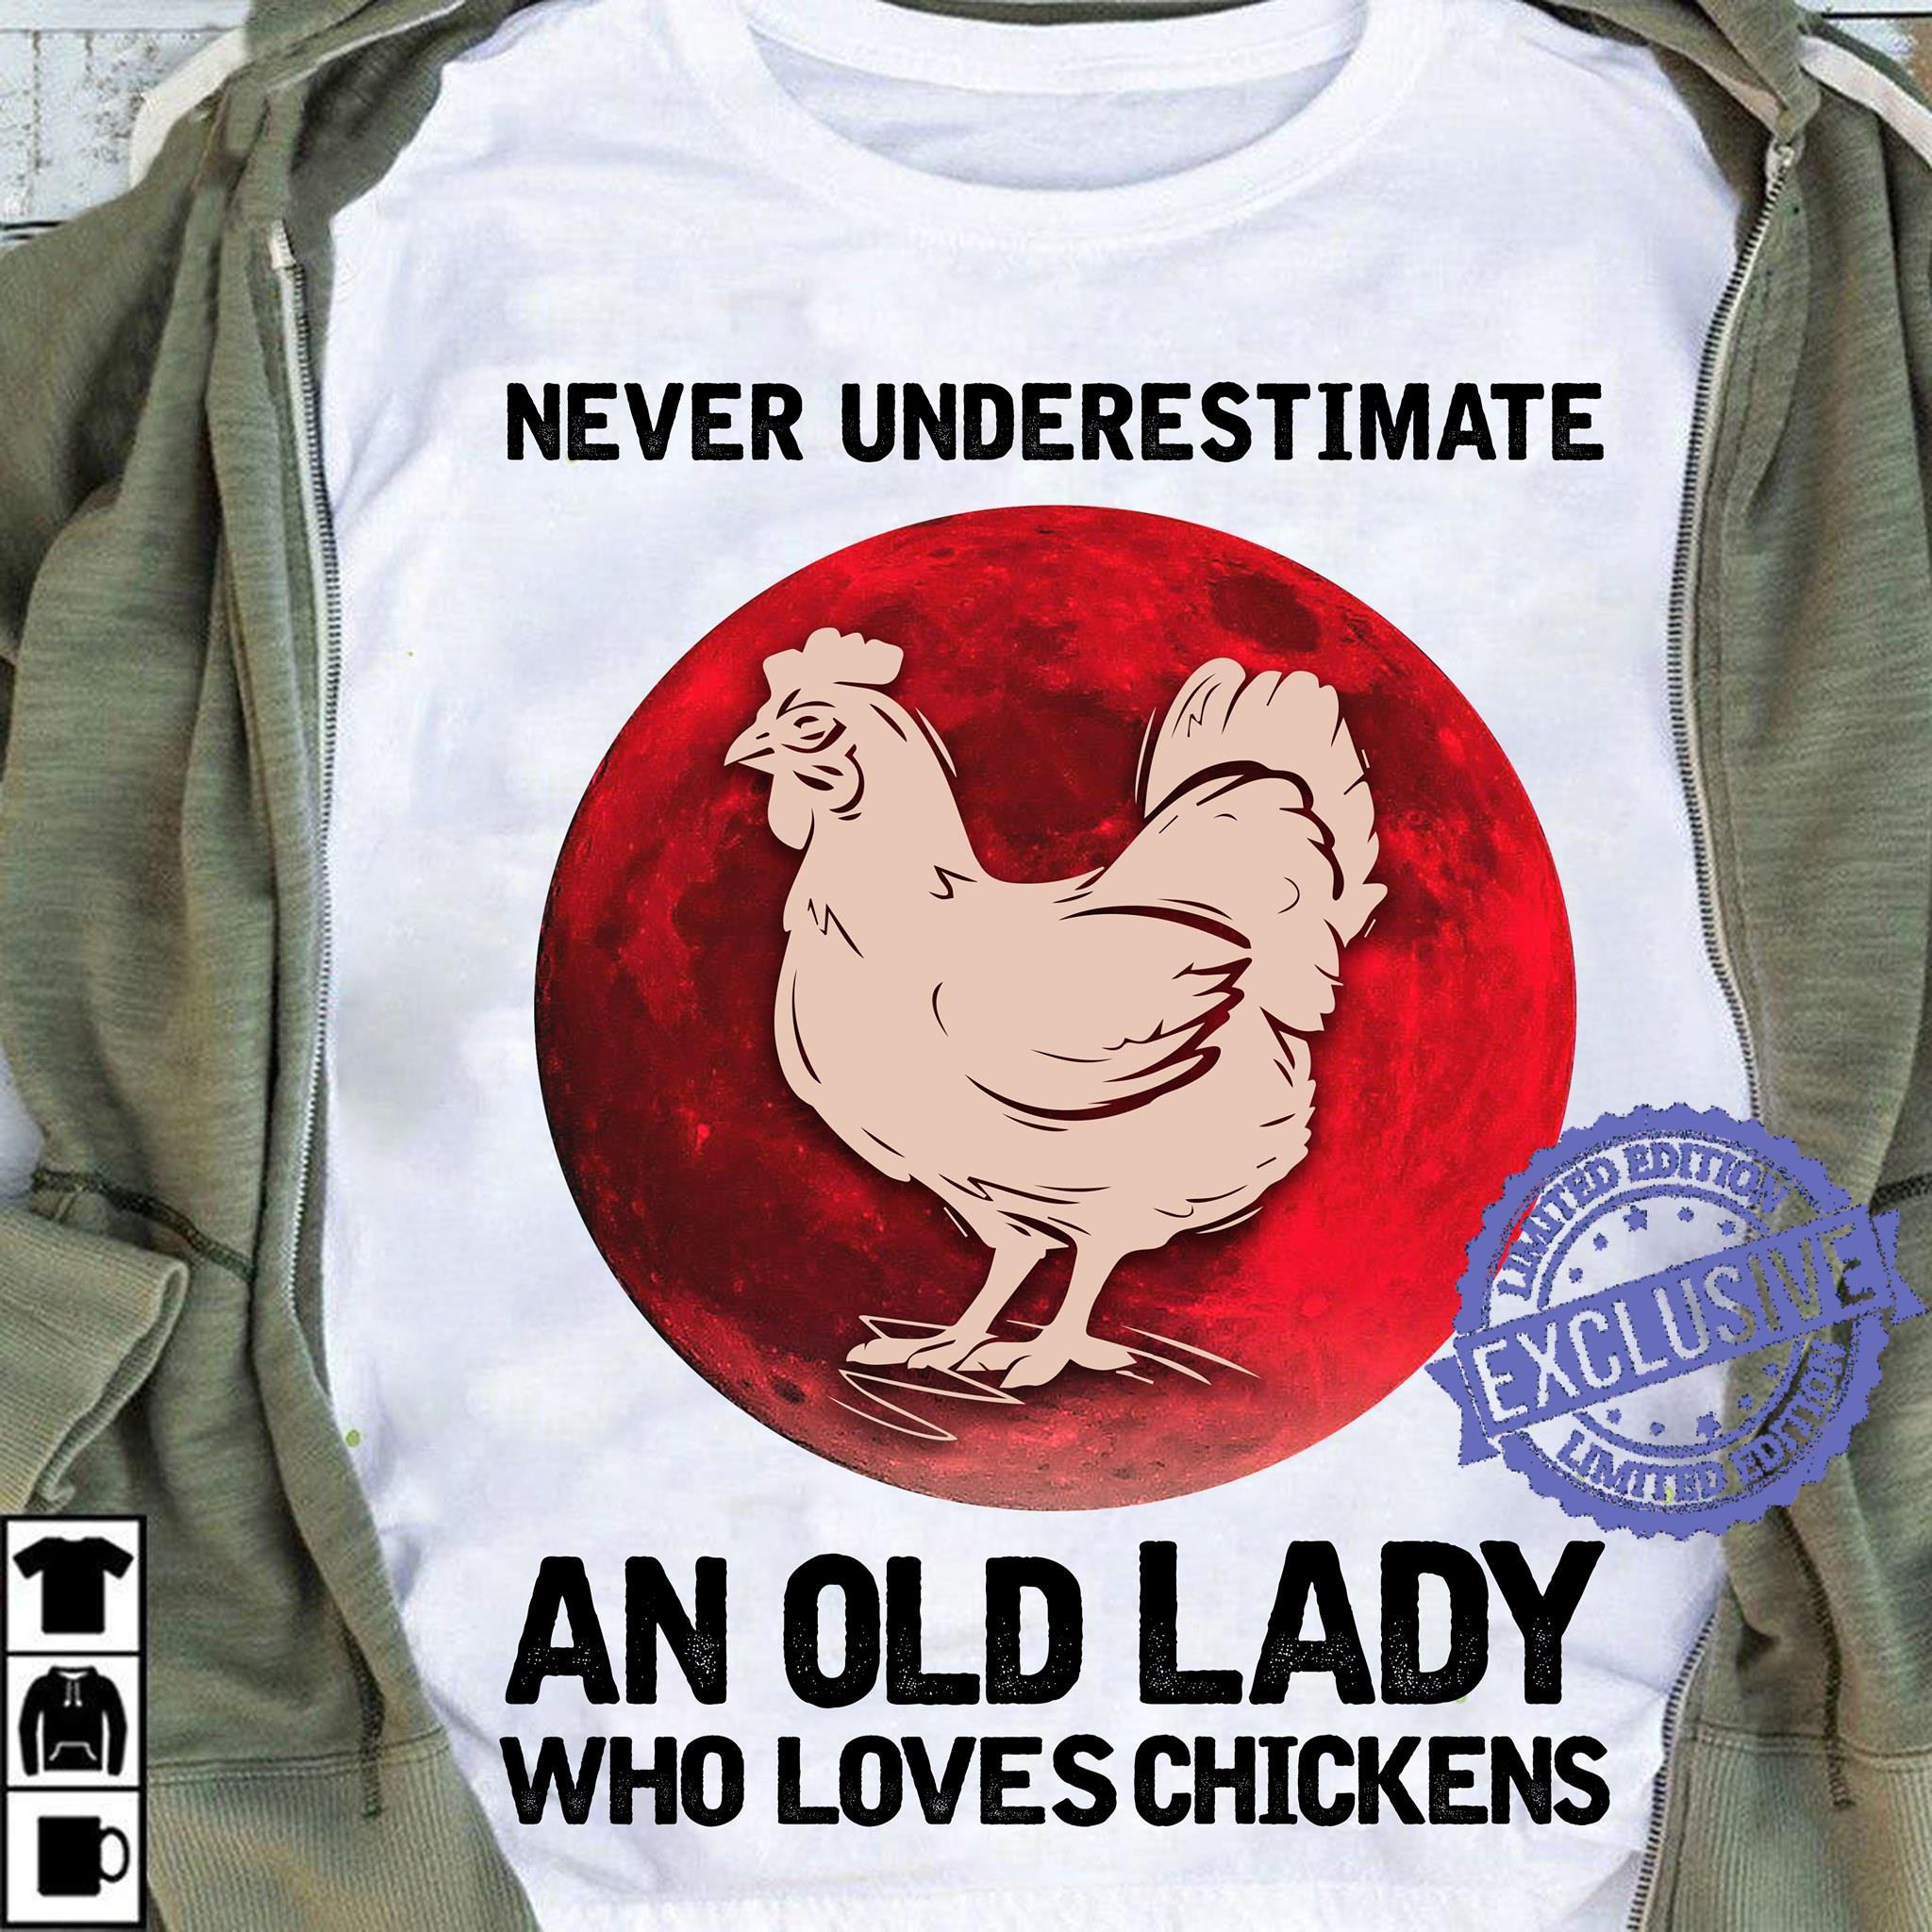 Never underestimate an old lady who loves chickens shirt